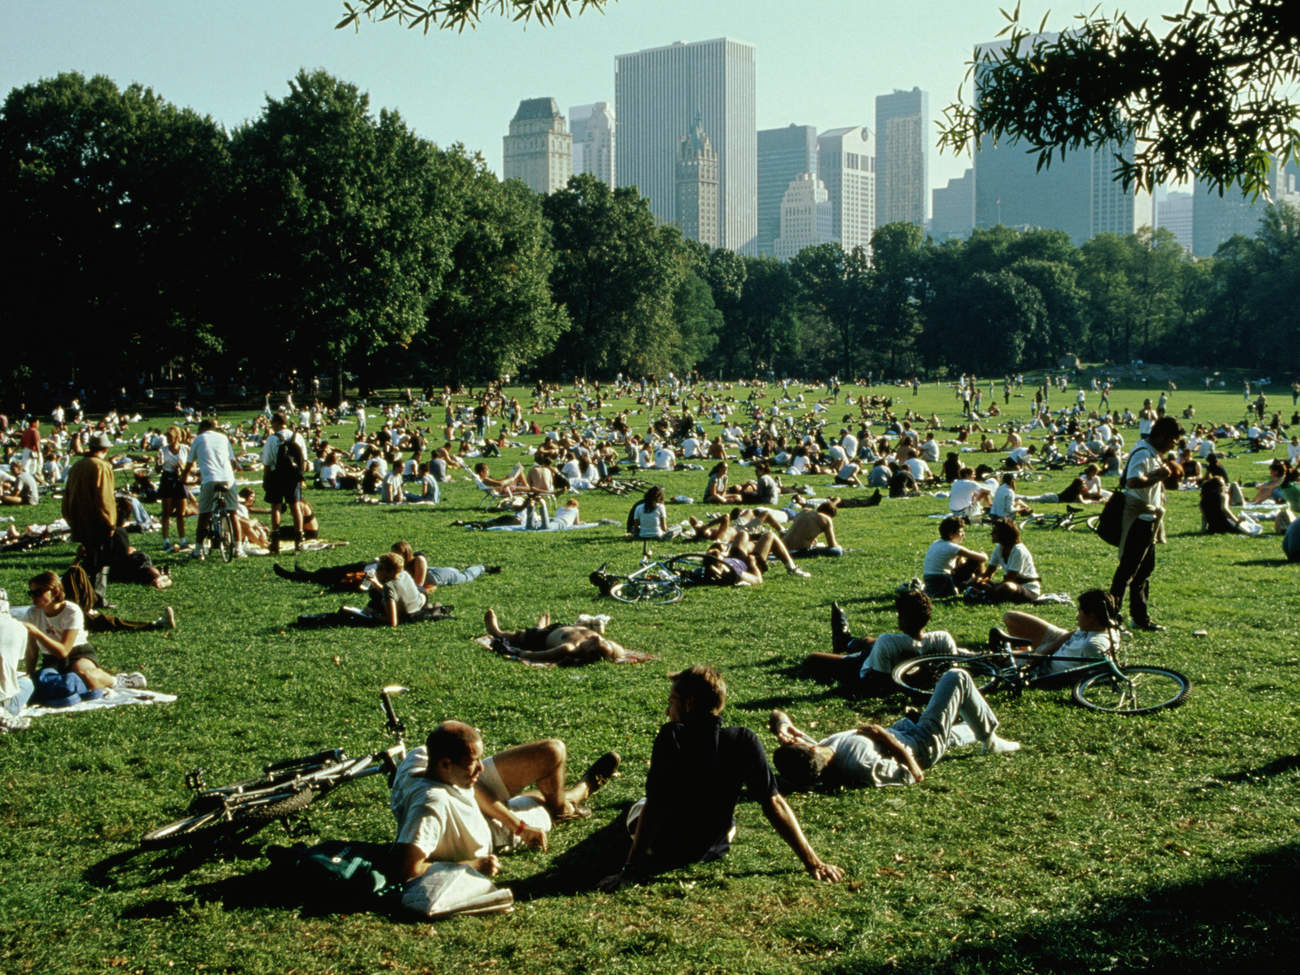 heat-dome-summer-relax-central-park-new-york